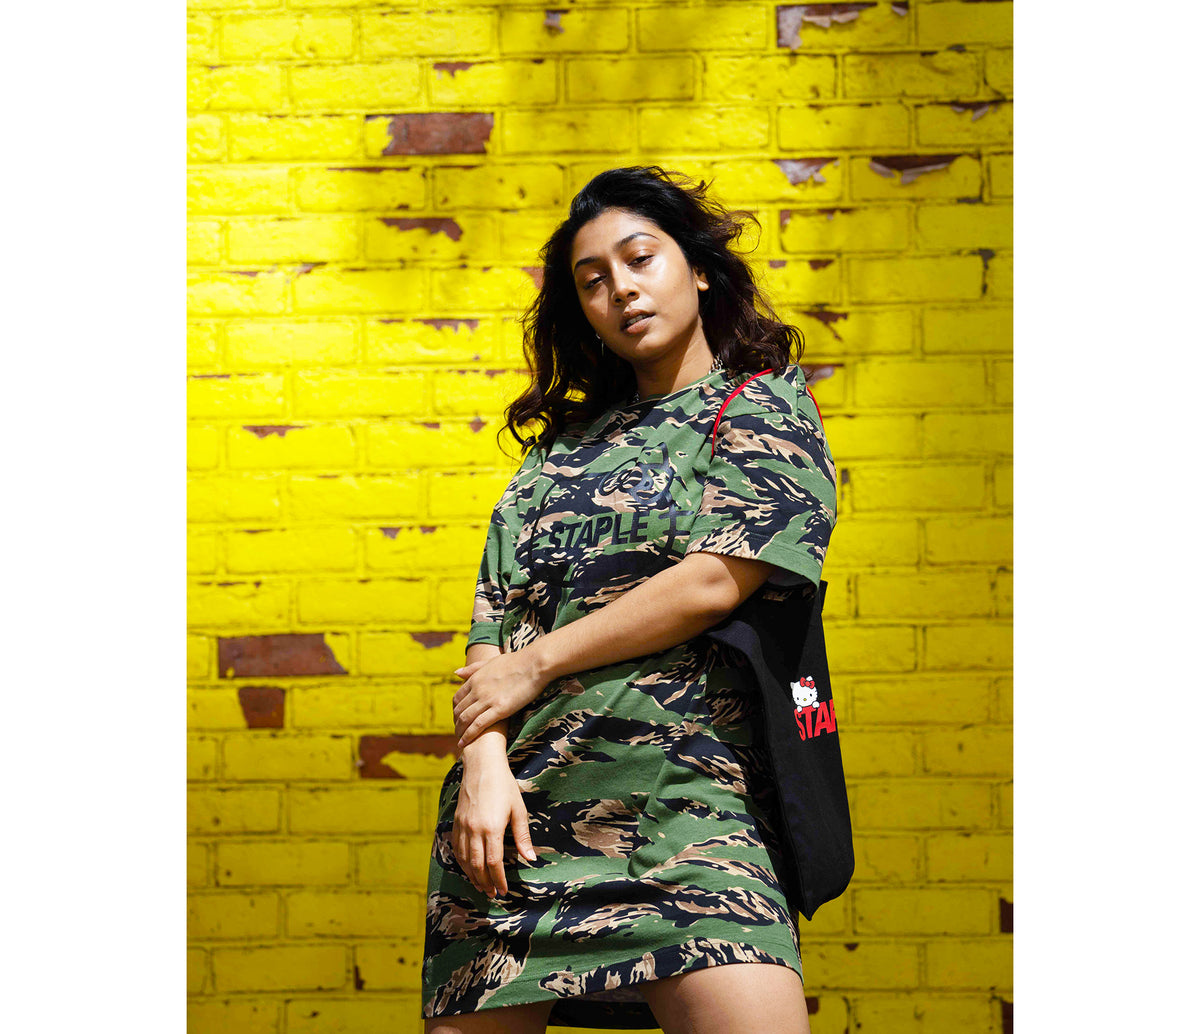 Staple Pigeon x Hello Kitty Camo Dress Exclusive